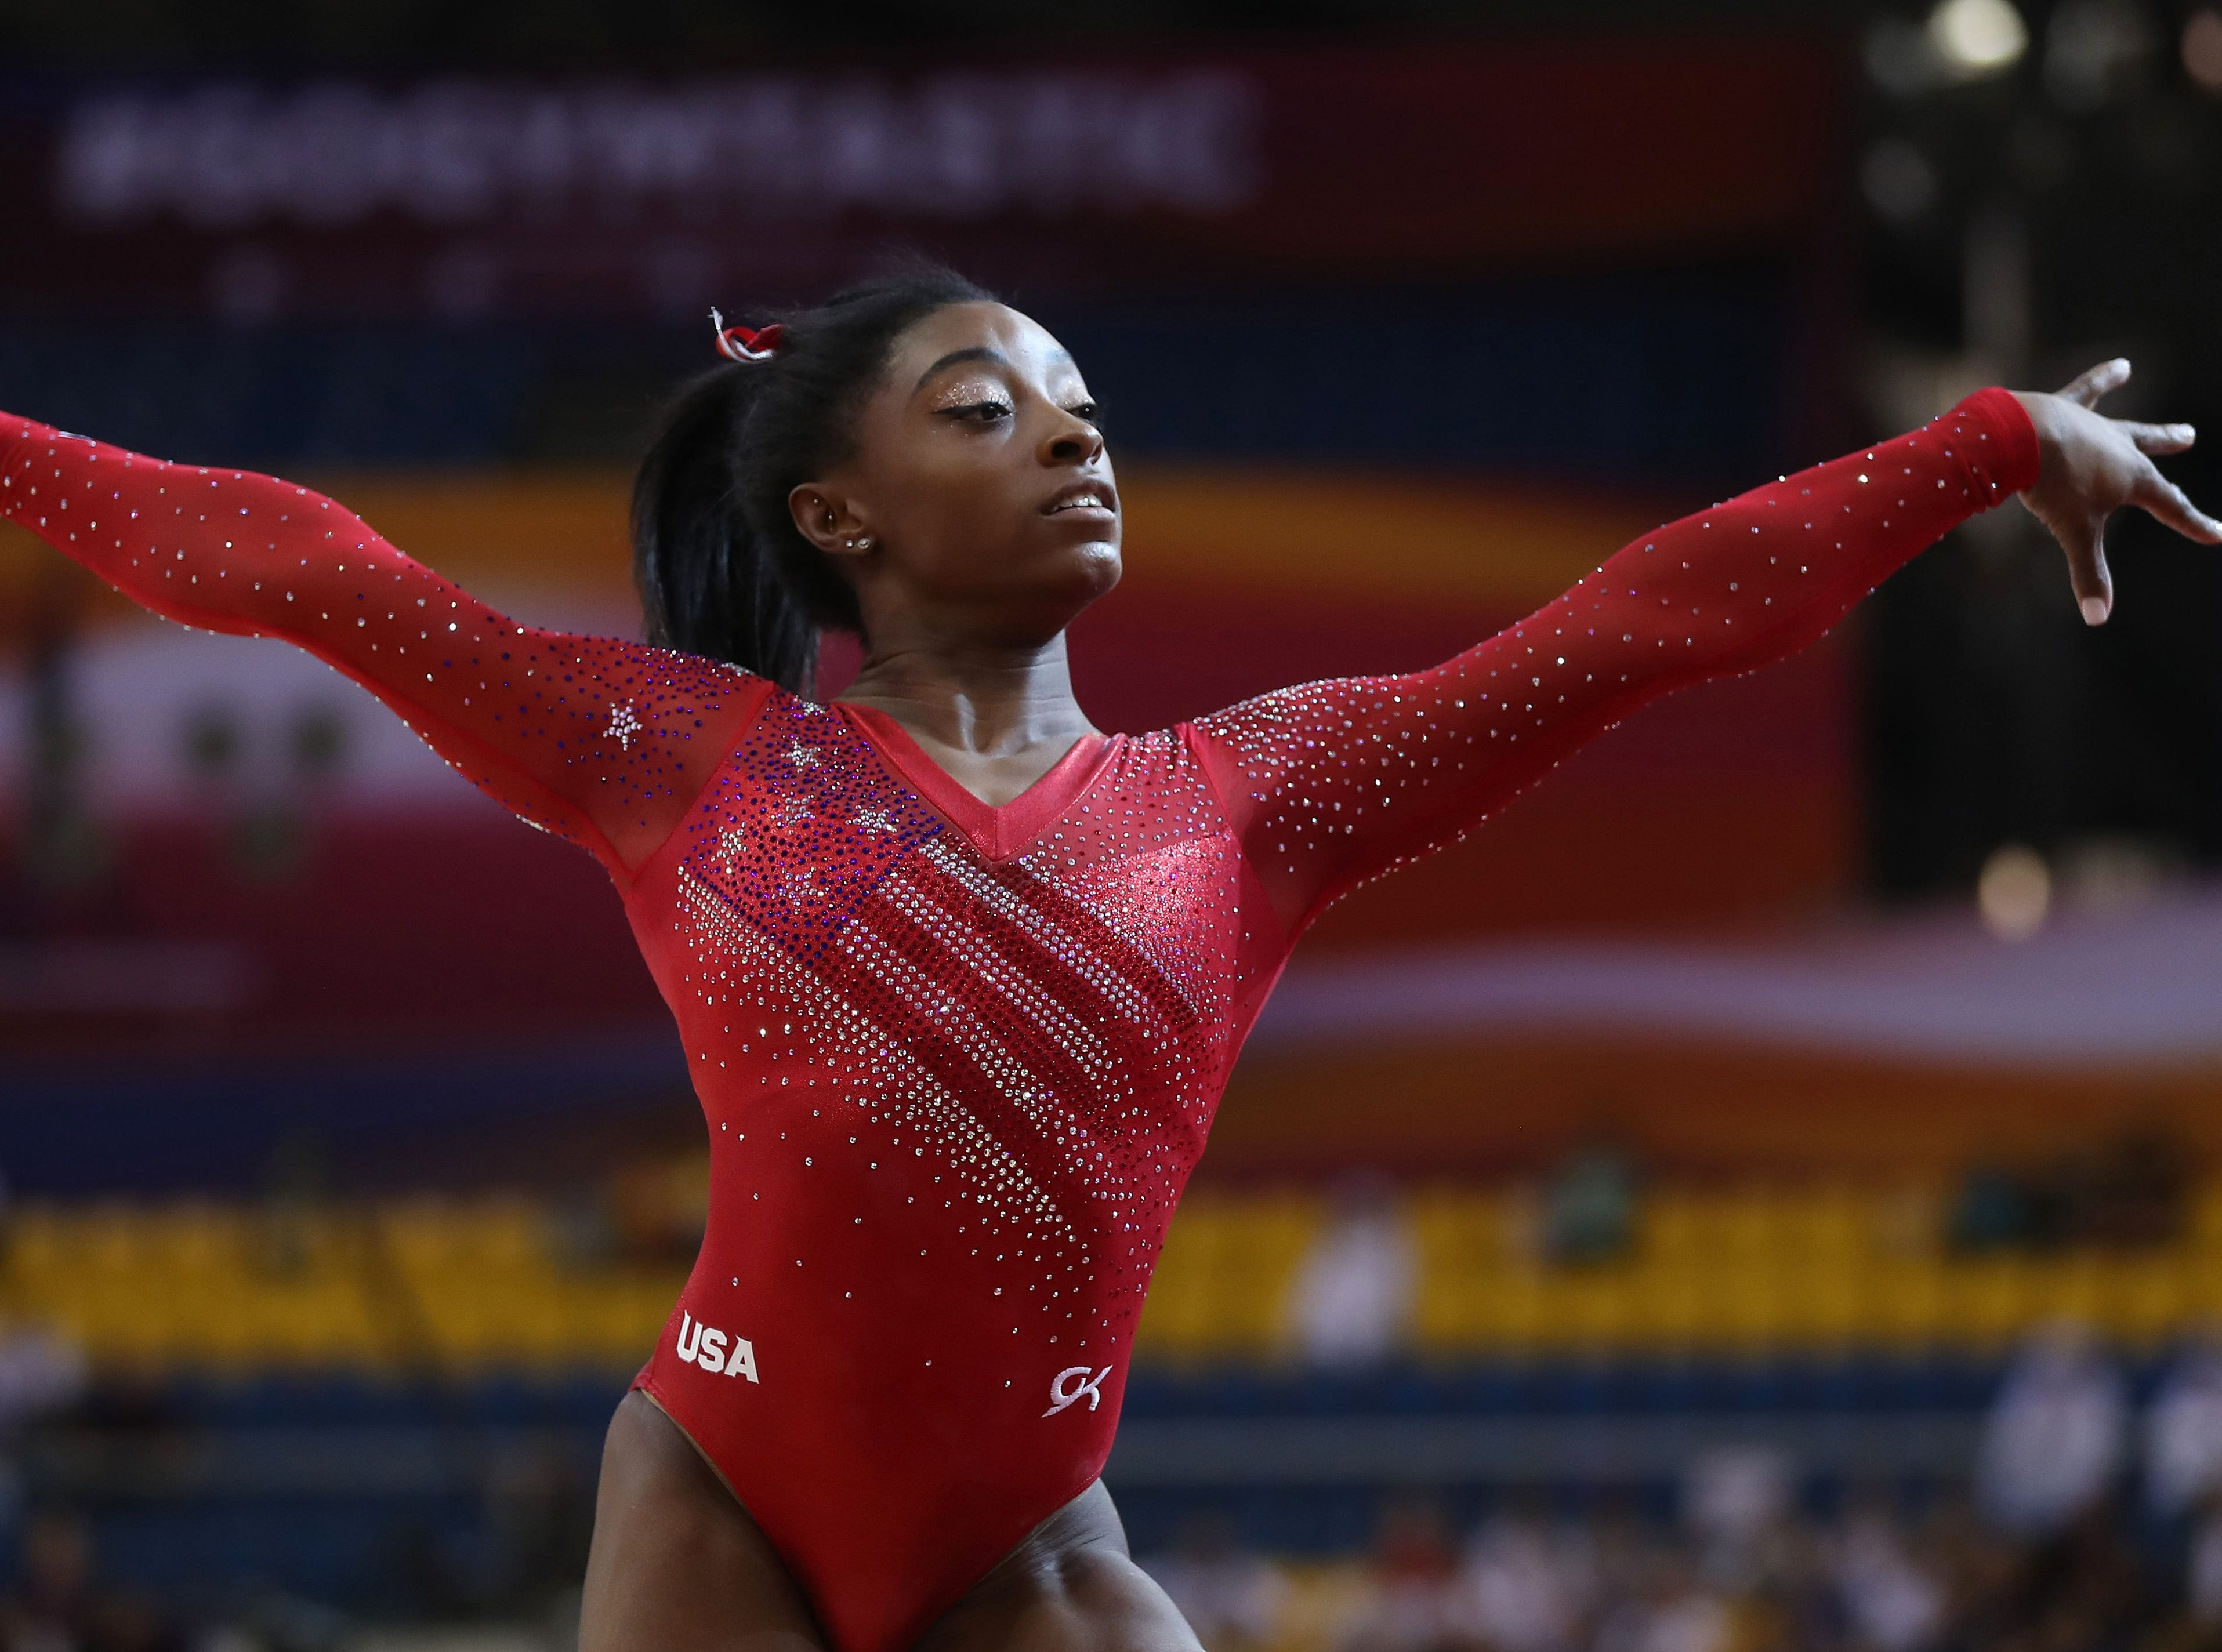 Simone Biles competes in the women's floor during women's team final of the 2018 FIG Artistic Gymnastics Championships at Aspire Dome on Oct. 30 in Doha, Qatar. The Americans won their fourth consecutive gold at worlds.